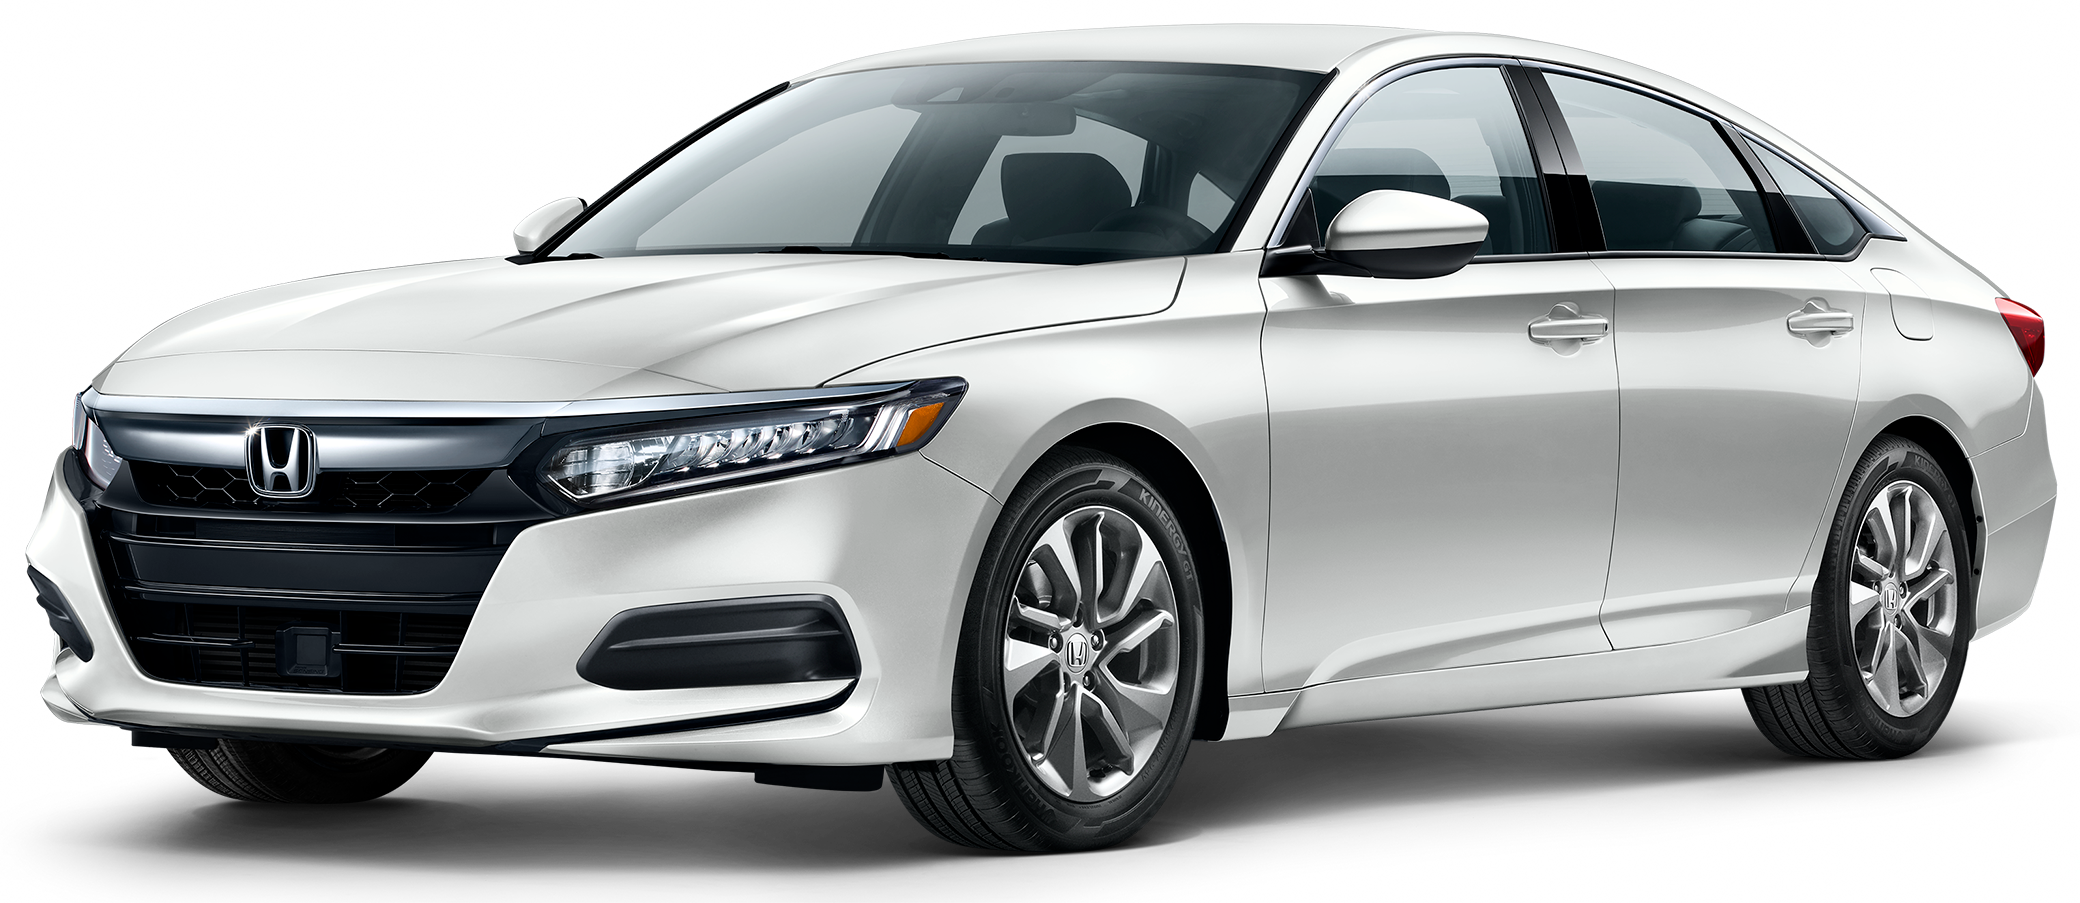 2020 Honda Accord Incentives, Specials & Offers in ...